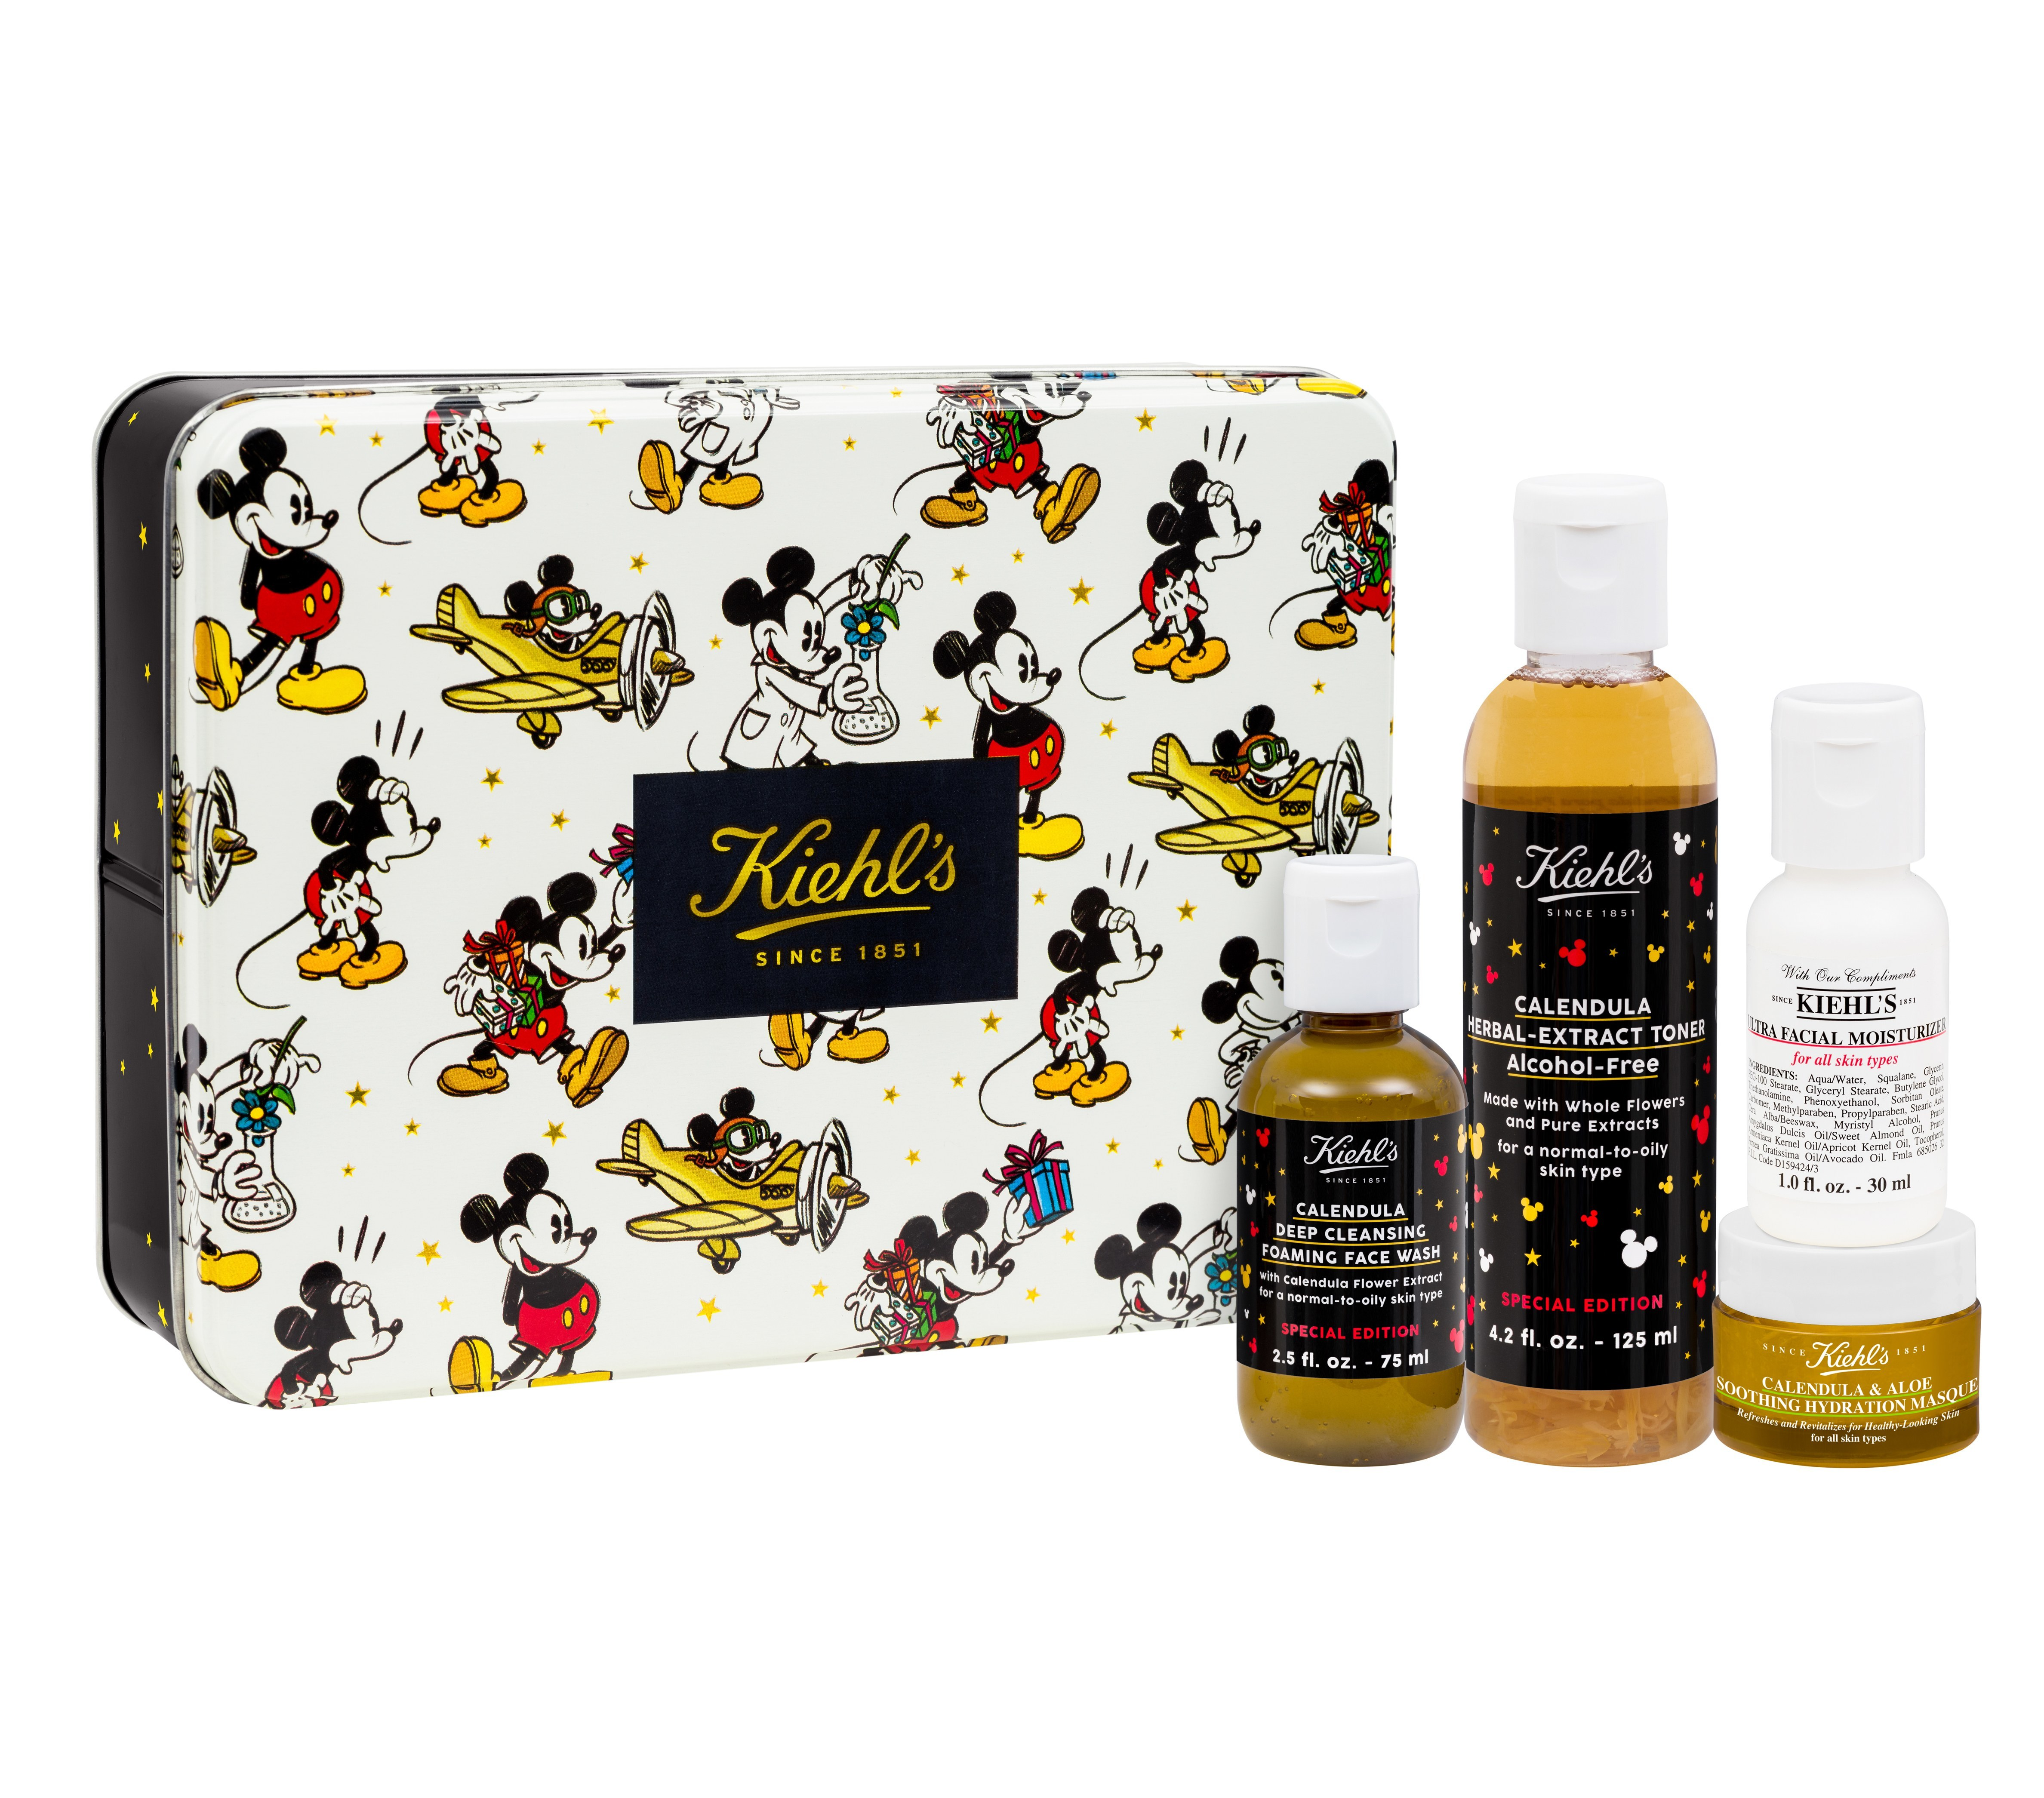 Disney x Kiehl's Collection for a Cause